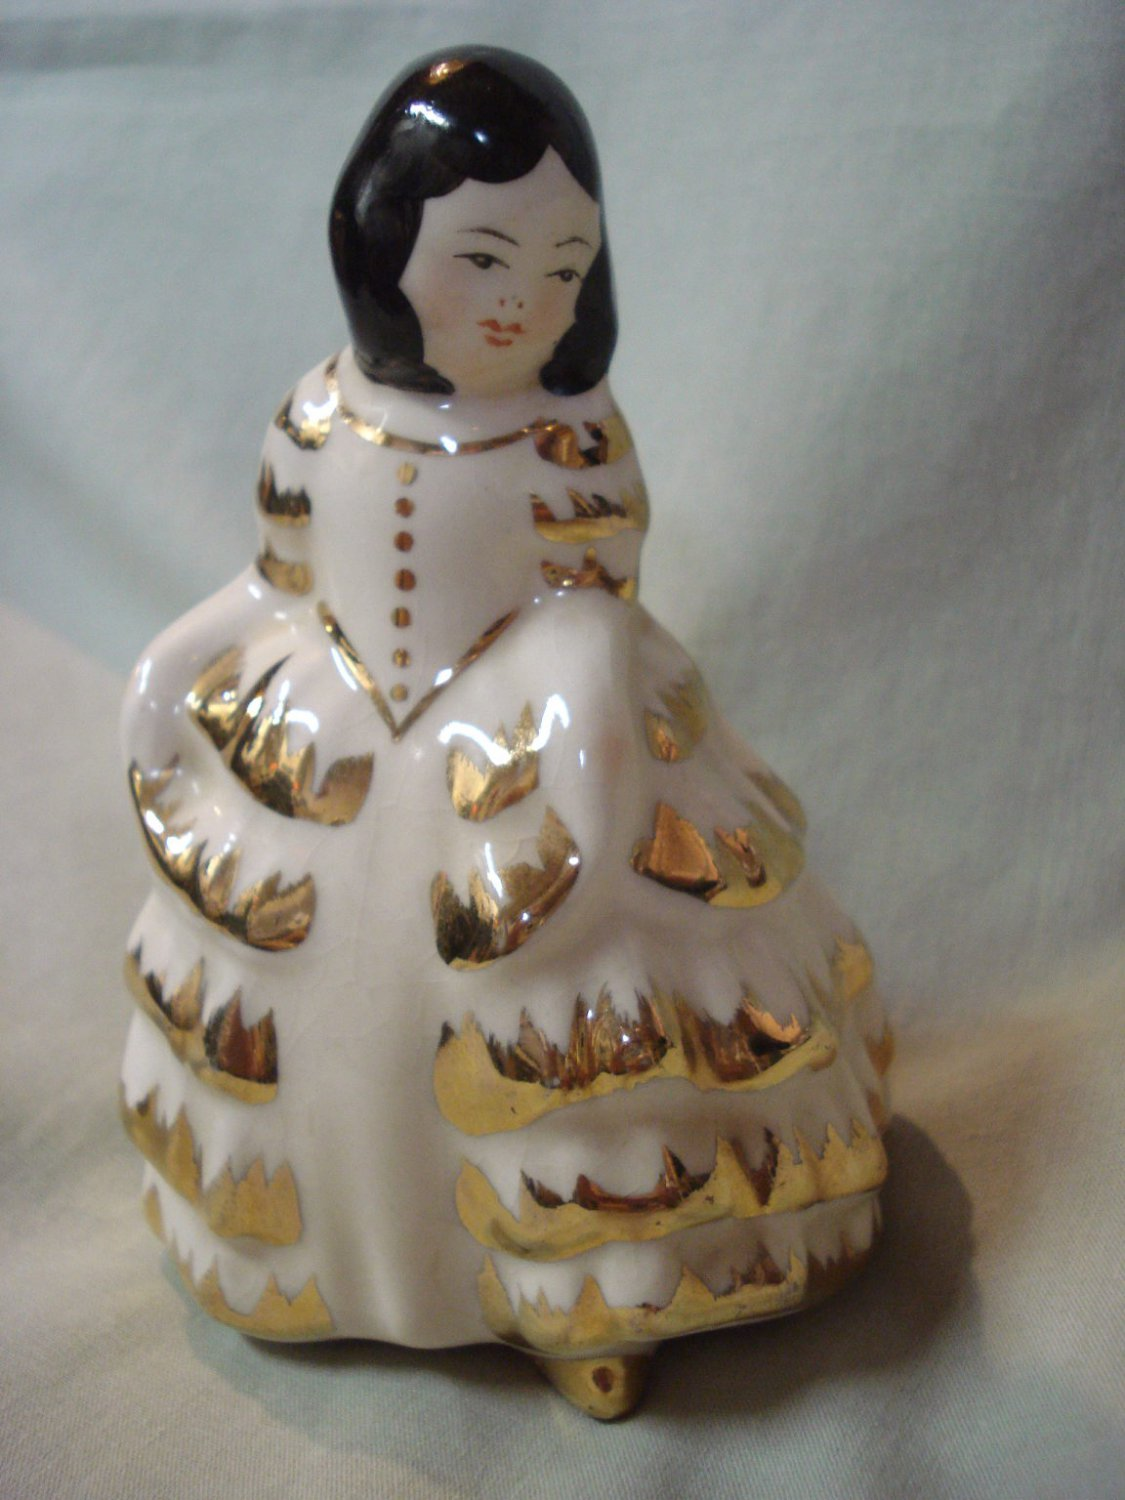 "Young Girl Porcelain Figurine In Long Ruffled White Dress, Gold Trim, 4"" High"